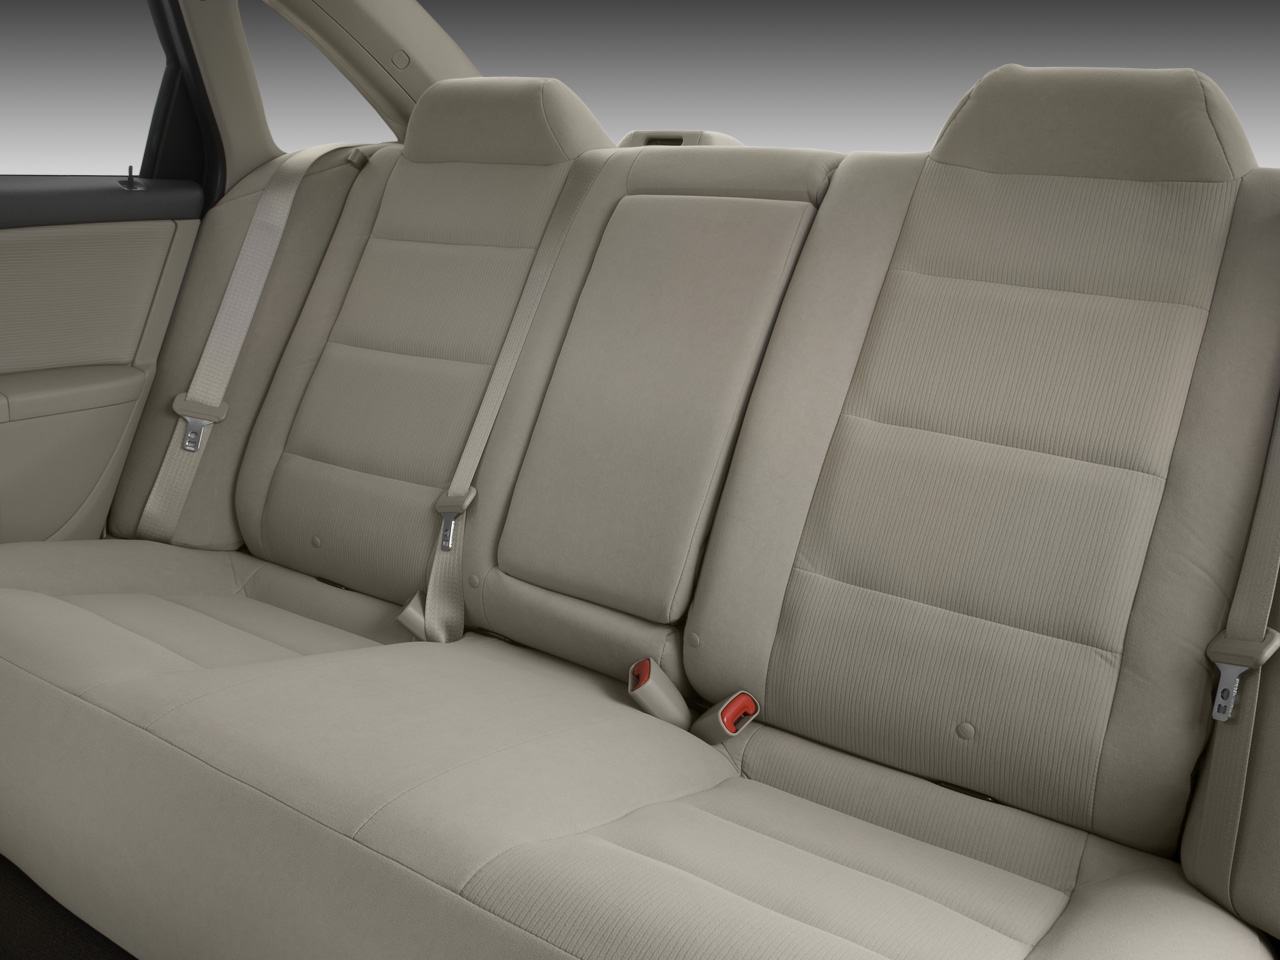 2016 ford mustang interior u s news amp world report - 16 25